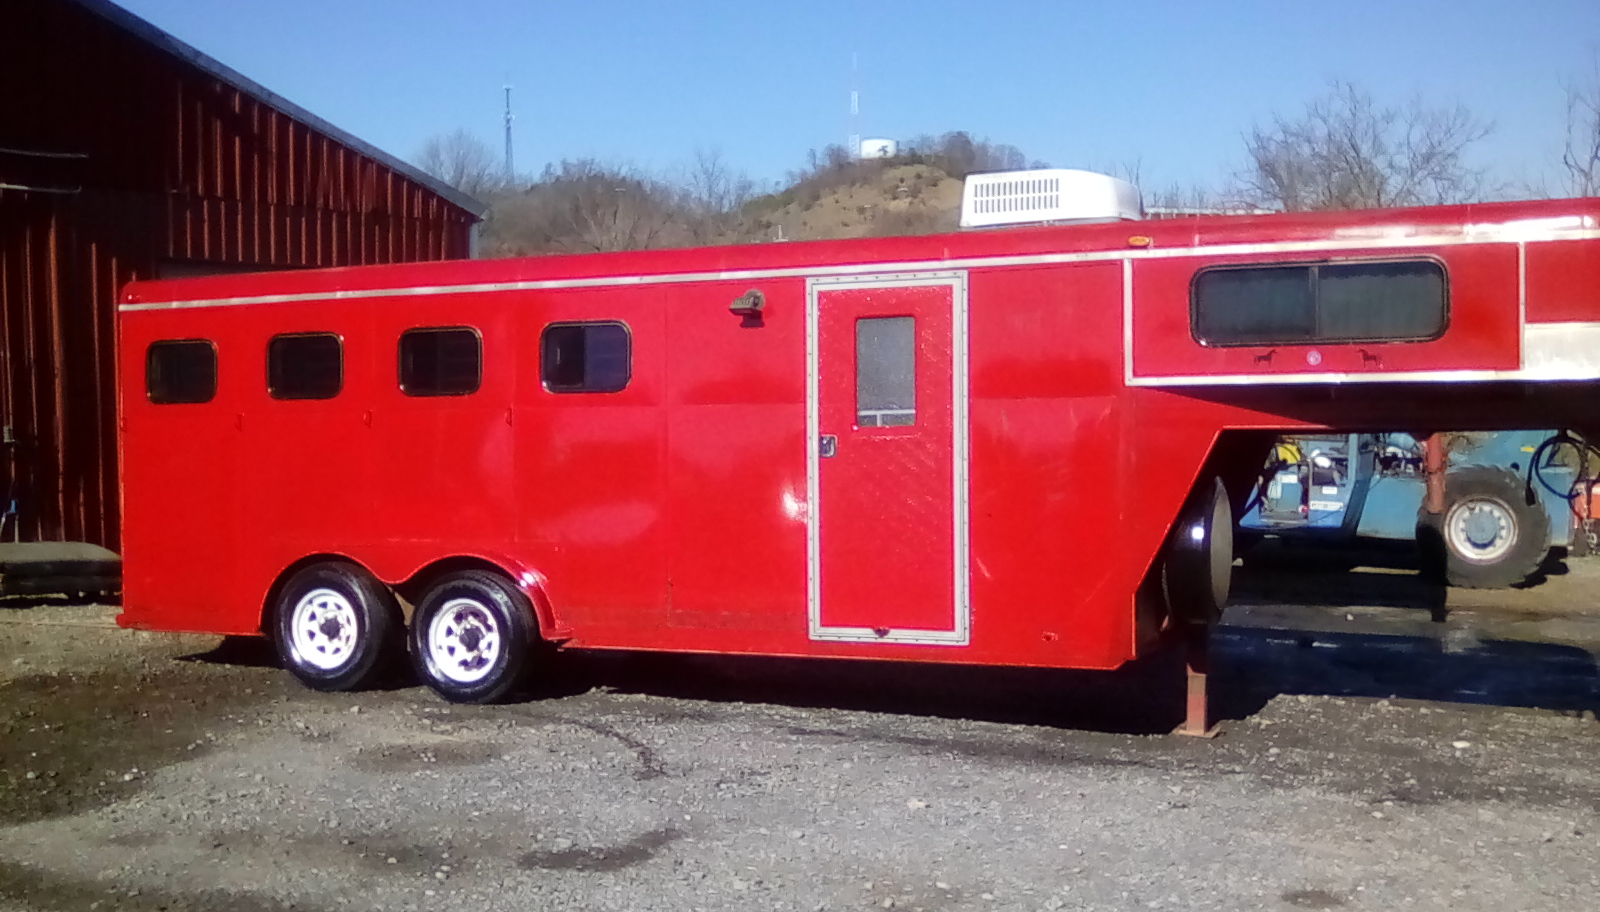 RED GN HORSE TRAILER W/ TITLE 20 FOOT Image